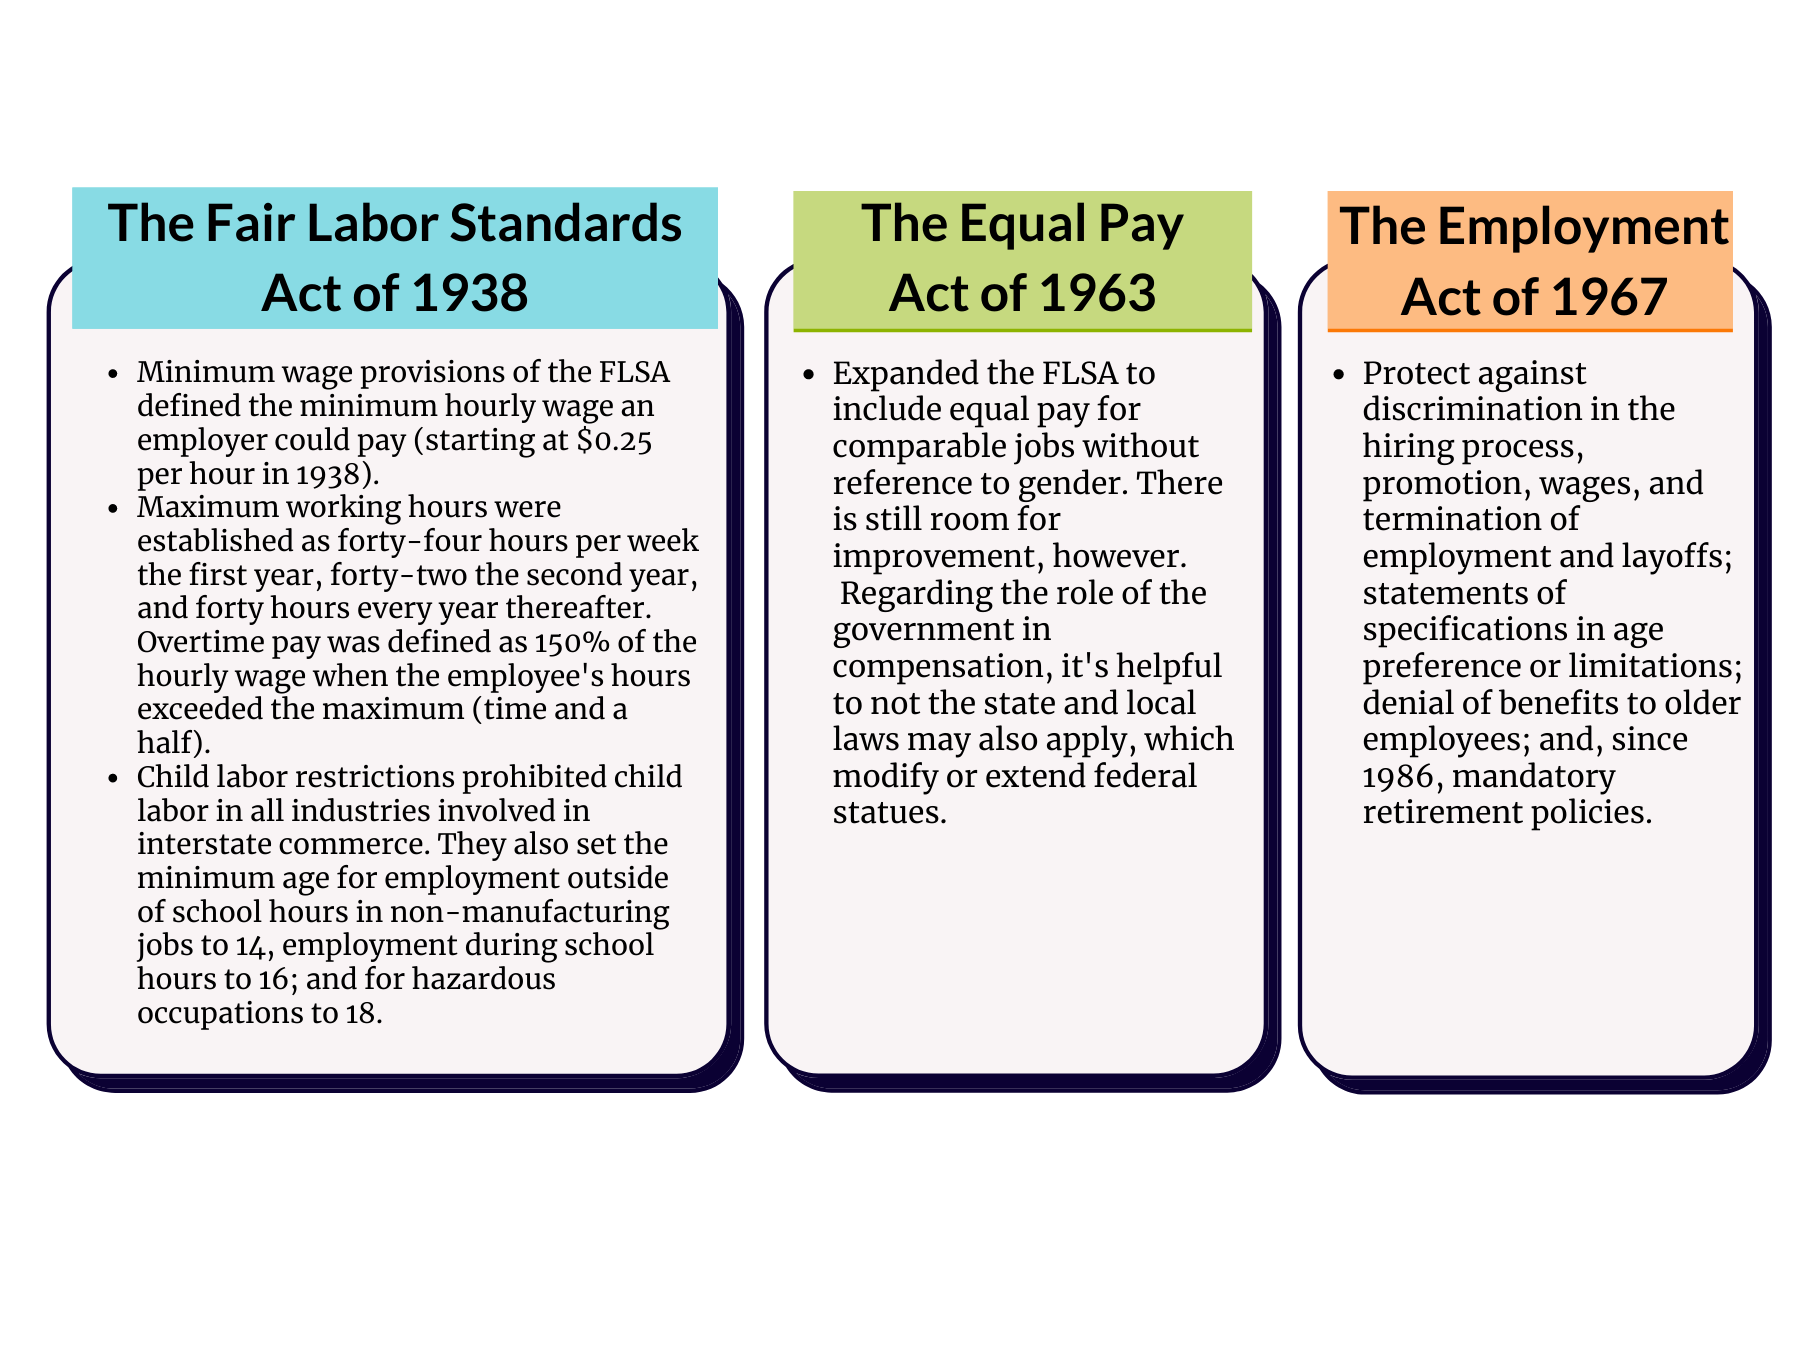 Establish a common understanding between the evaluator and evaluatee regarding work expectations; the work to be accomplished, and how that work is going to be evaluated. (6)